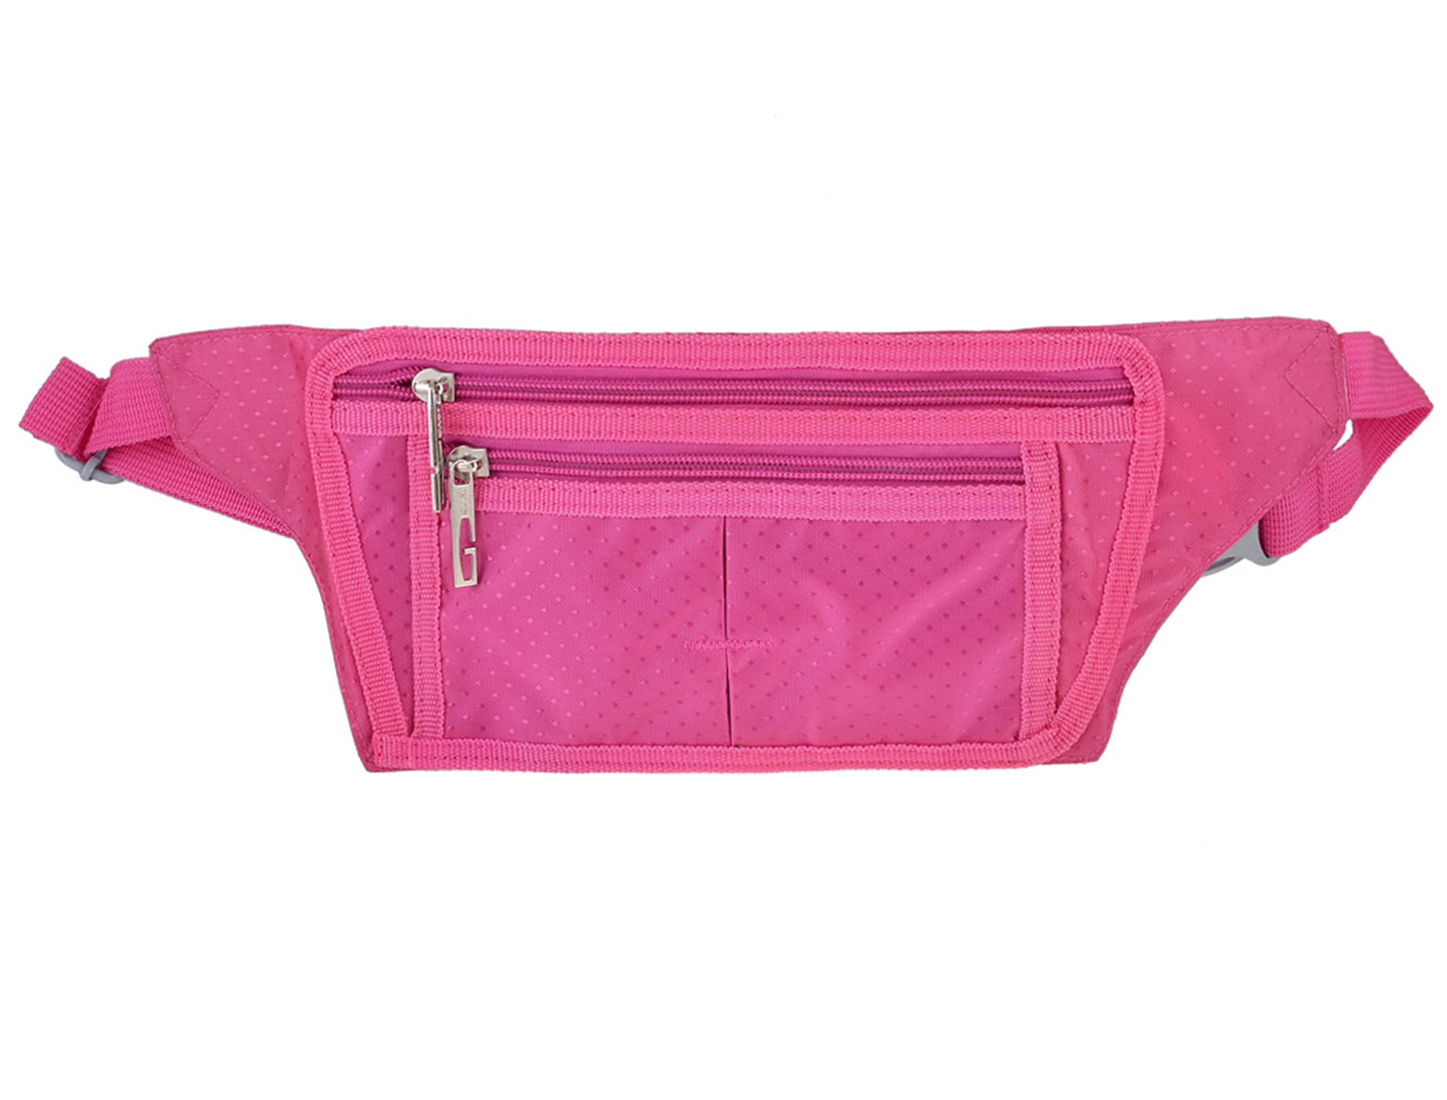 Women Side Release Buckle Zippers 3 Compartments Pockets Waist Bag Fanny Pack Fuchsia